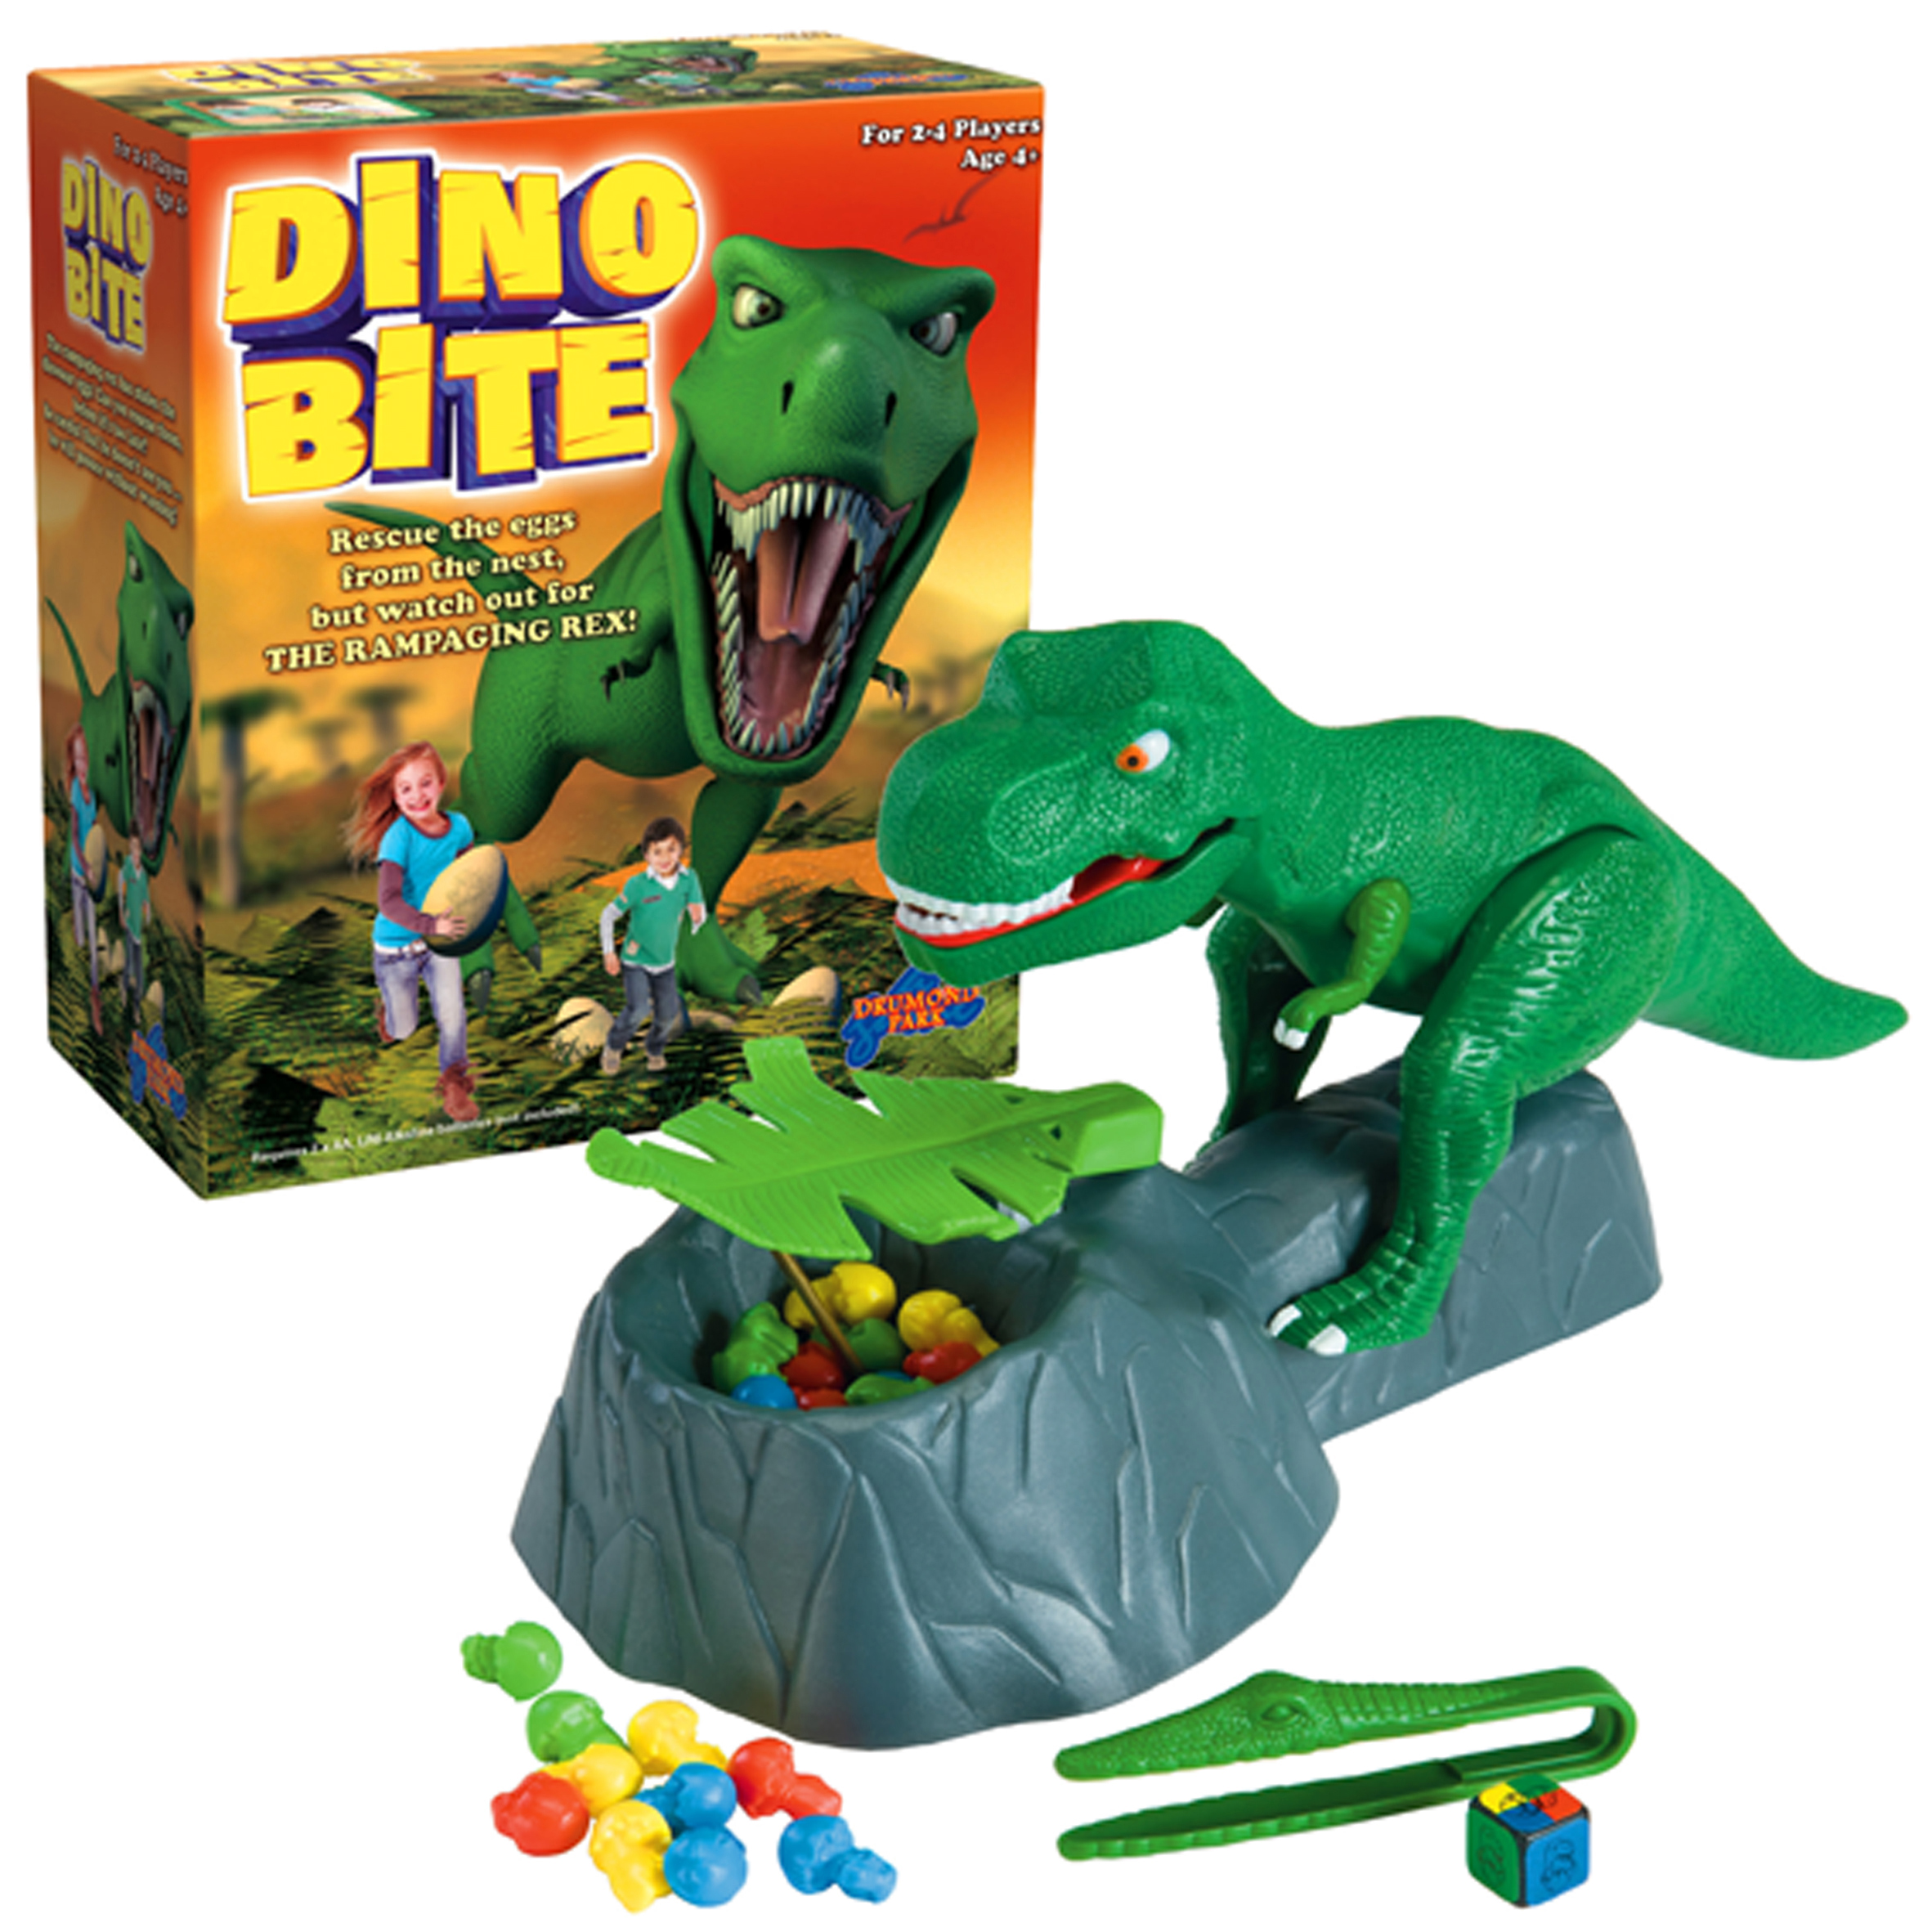 Image of Dino Bite Game